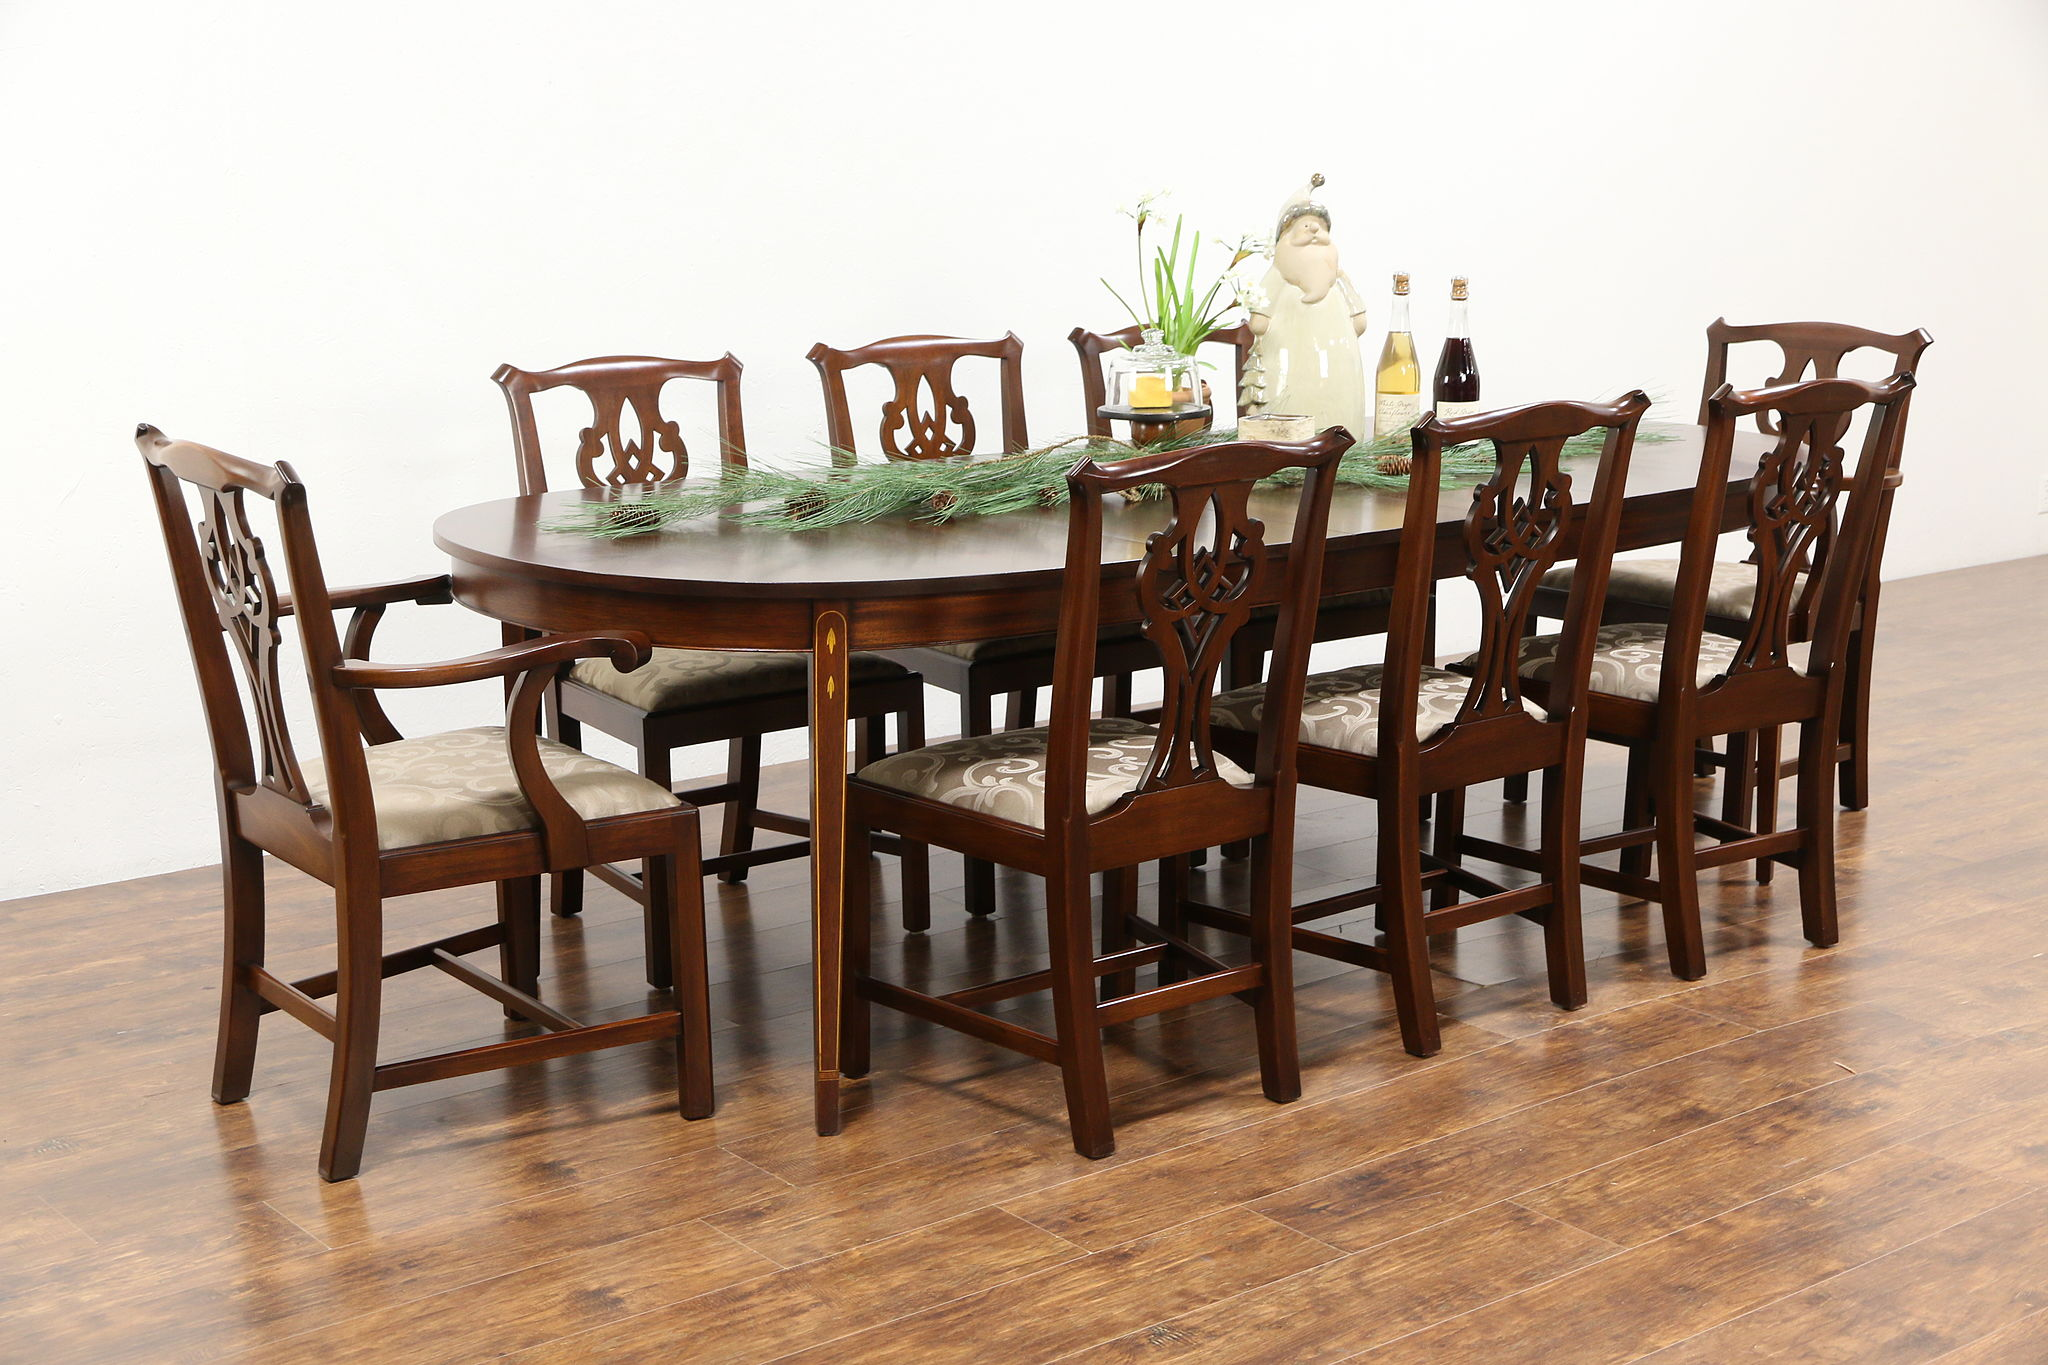 Traditional Mahogany Dining Set  Table 3 Leaves  8 Chairs  Signed Henkel  Harris. Traditional Mahogany Dining Set  Table 3 Leaves  8 Chairs  Signed